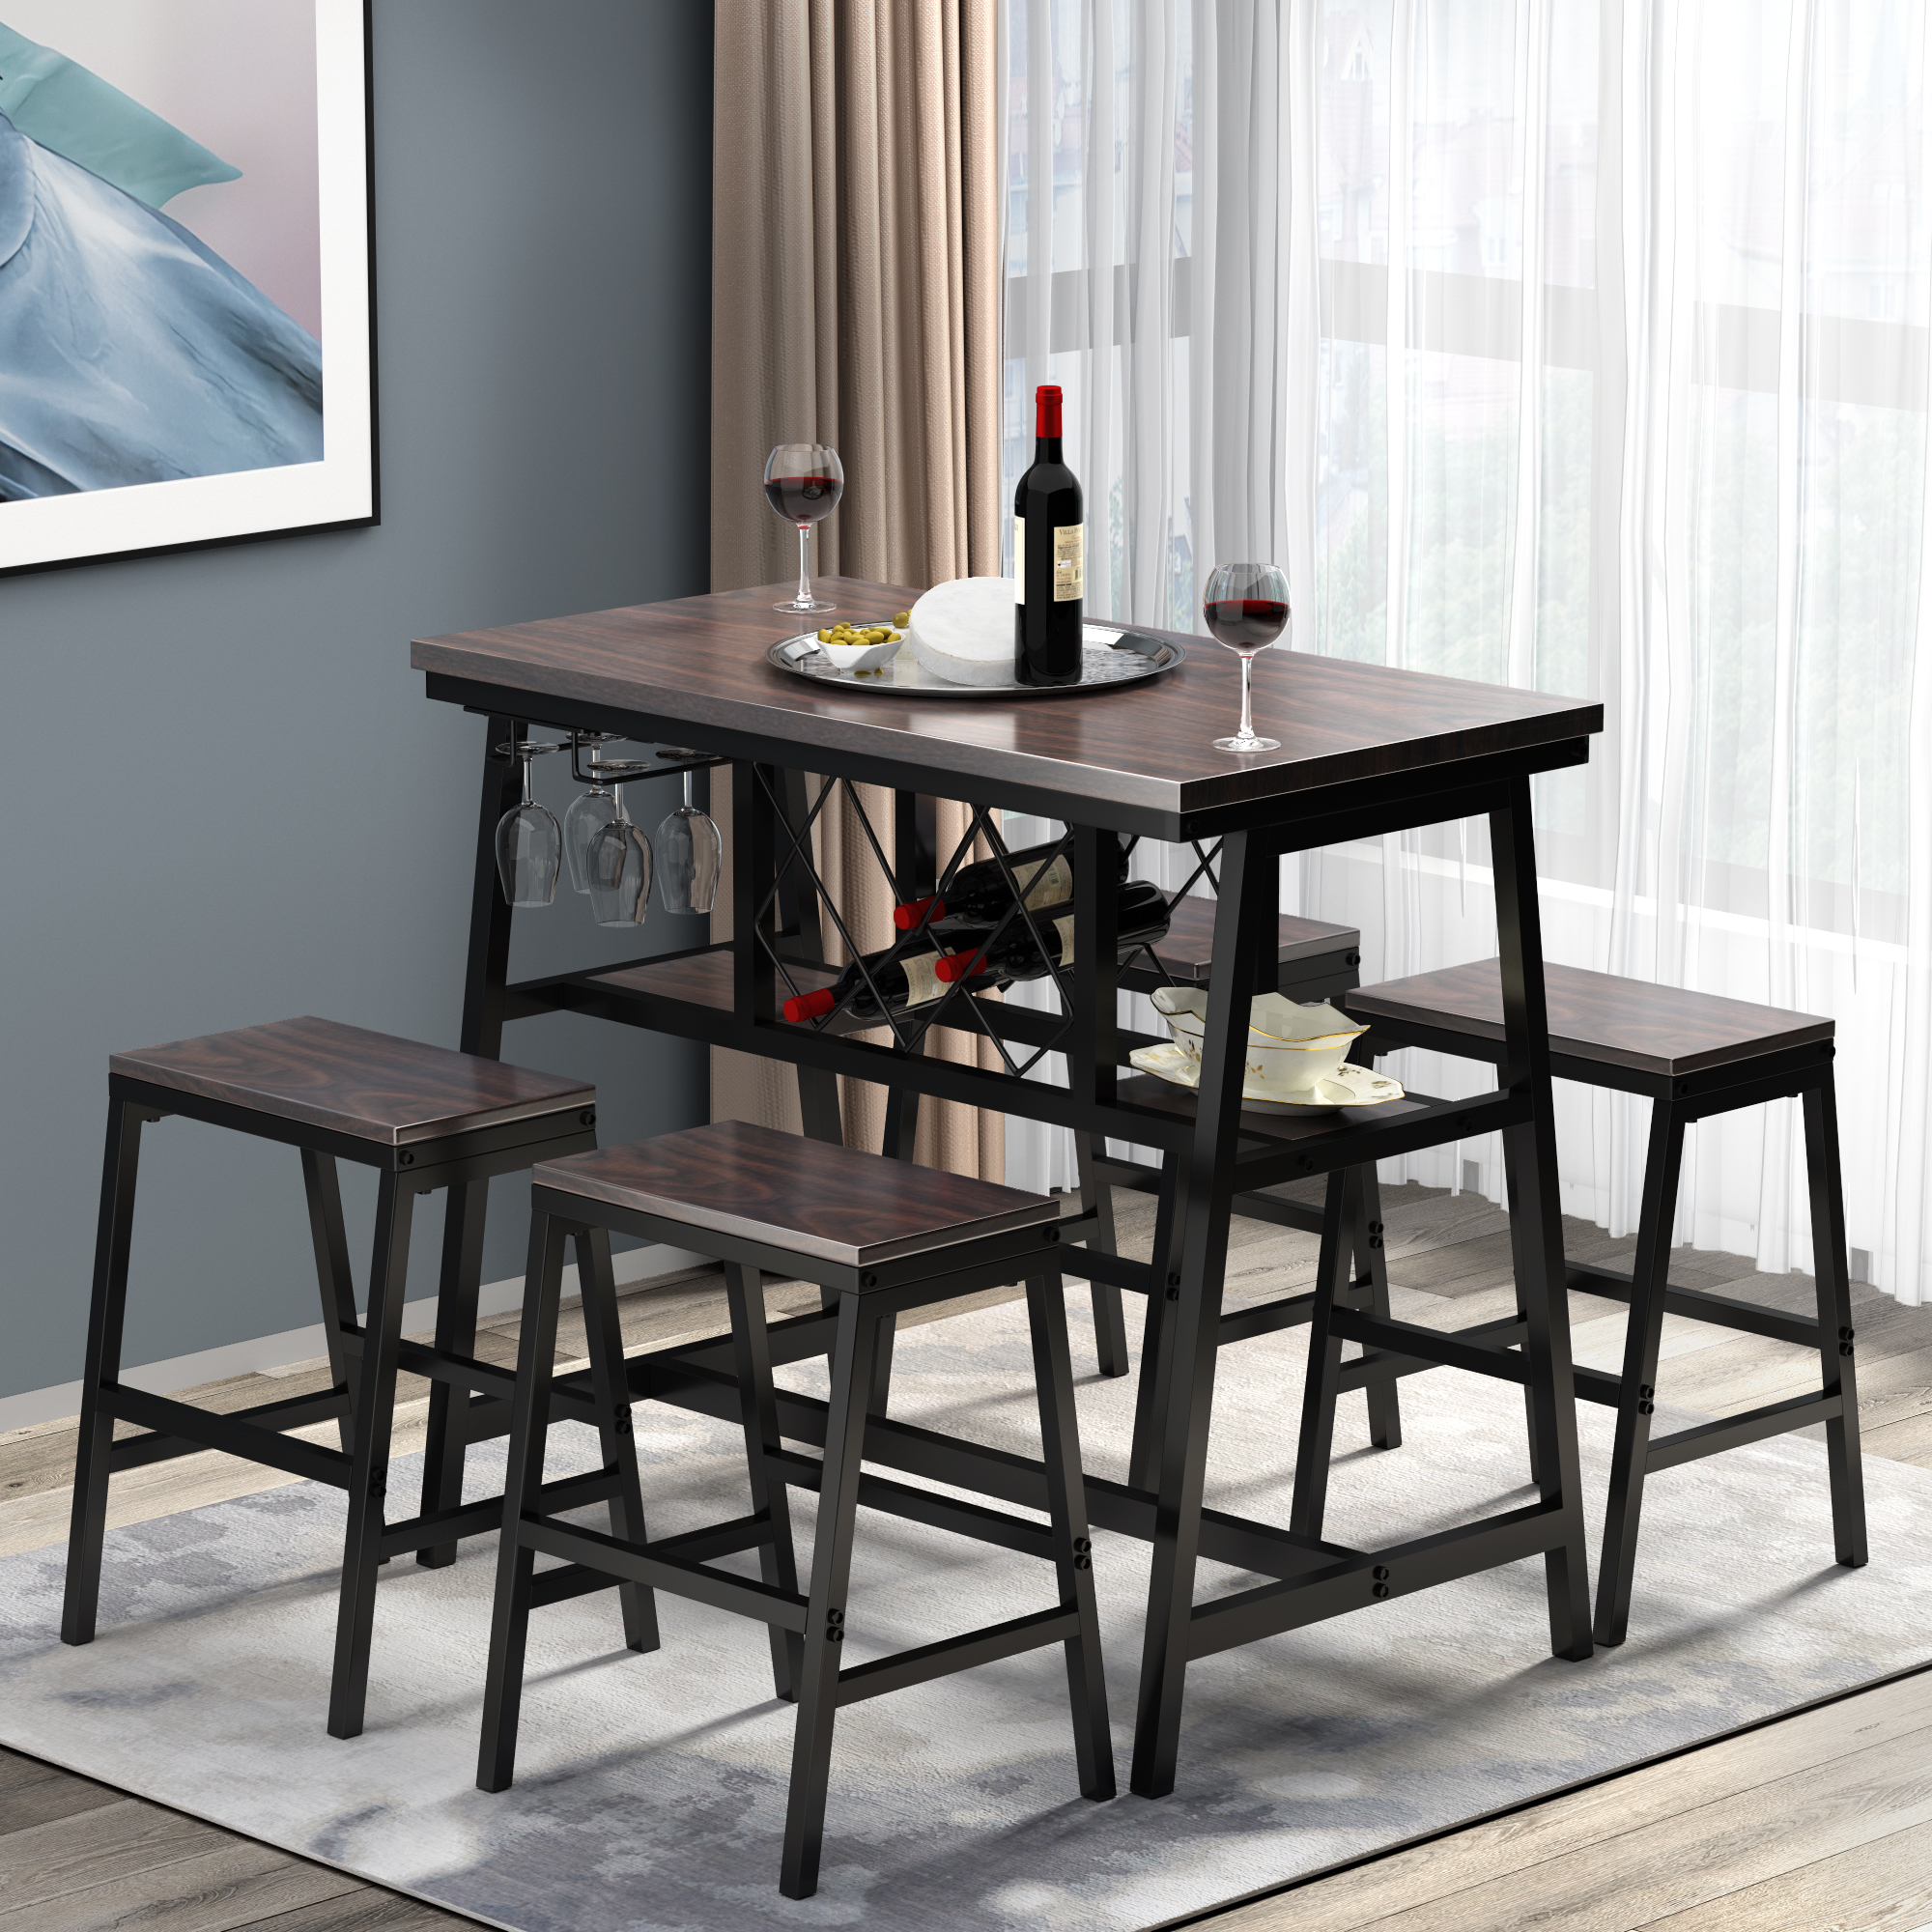 5 piece counter height dining table set with 4 stools